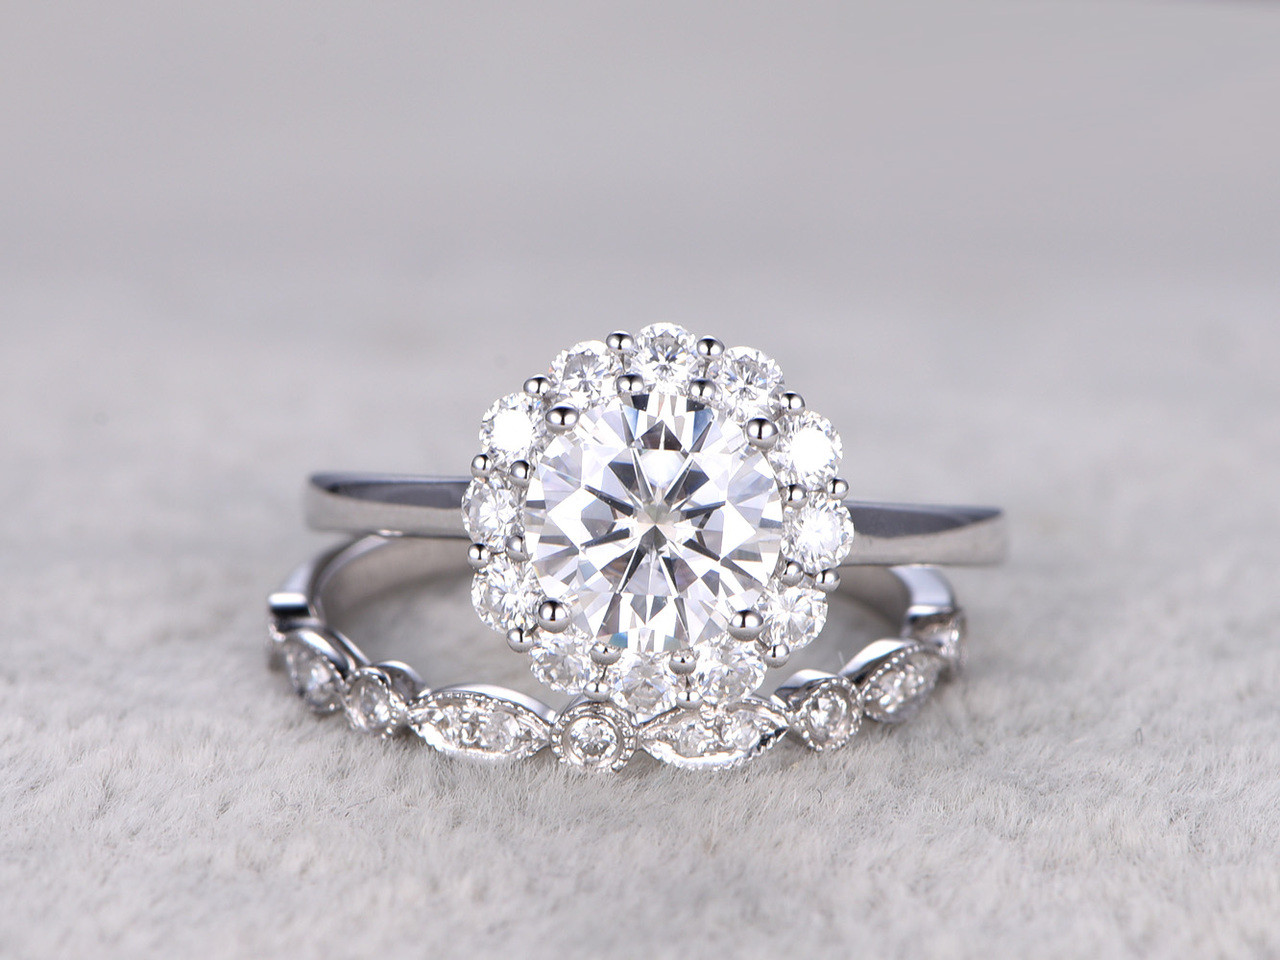 closed wedding topic bands me moissanite show your please